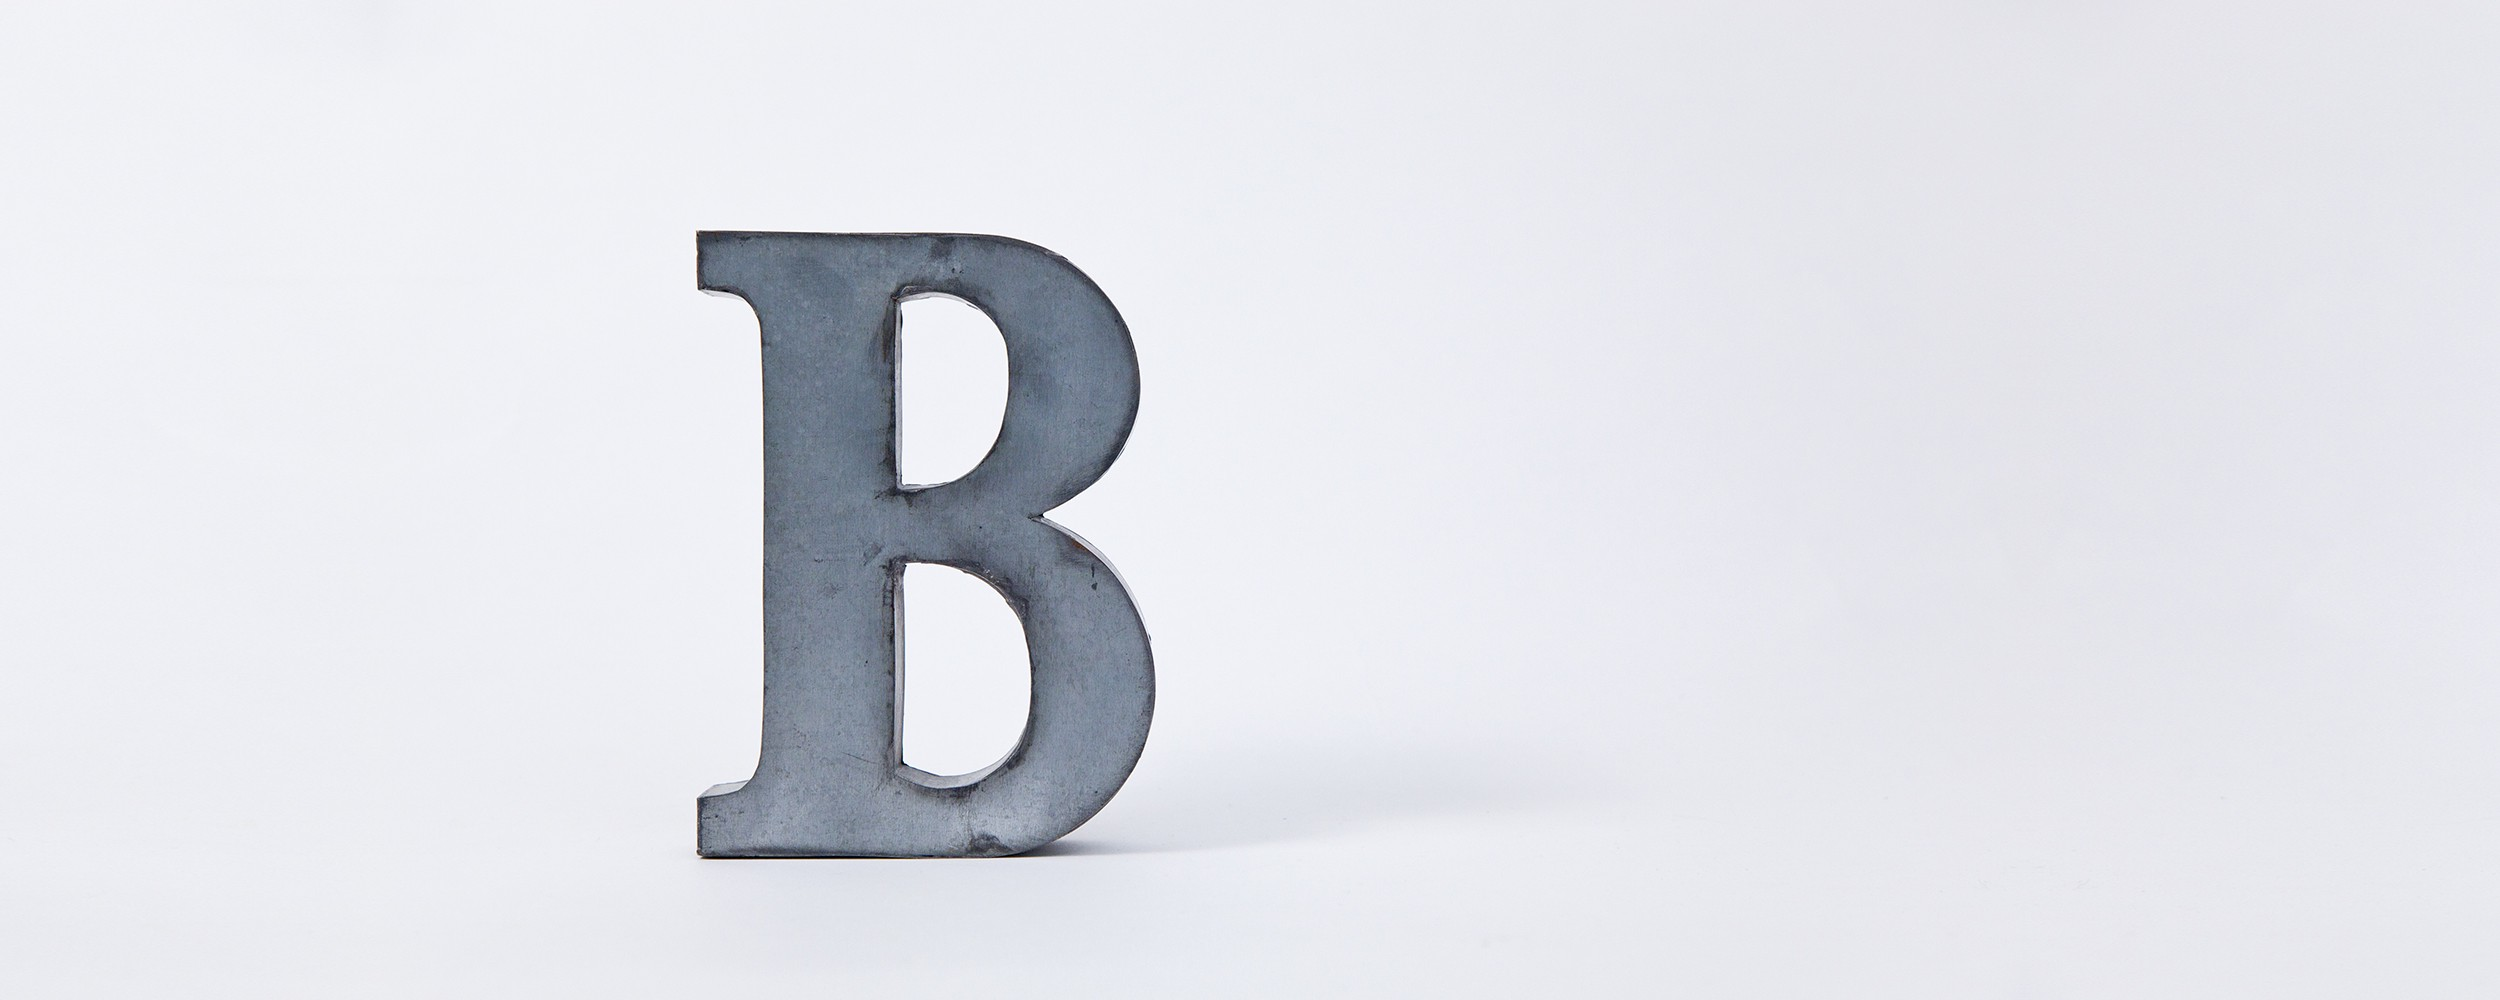 Metal letter B on a grey background